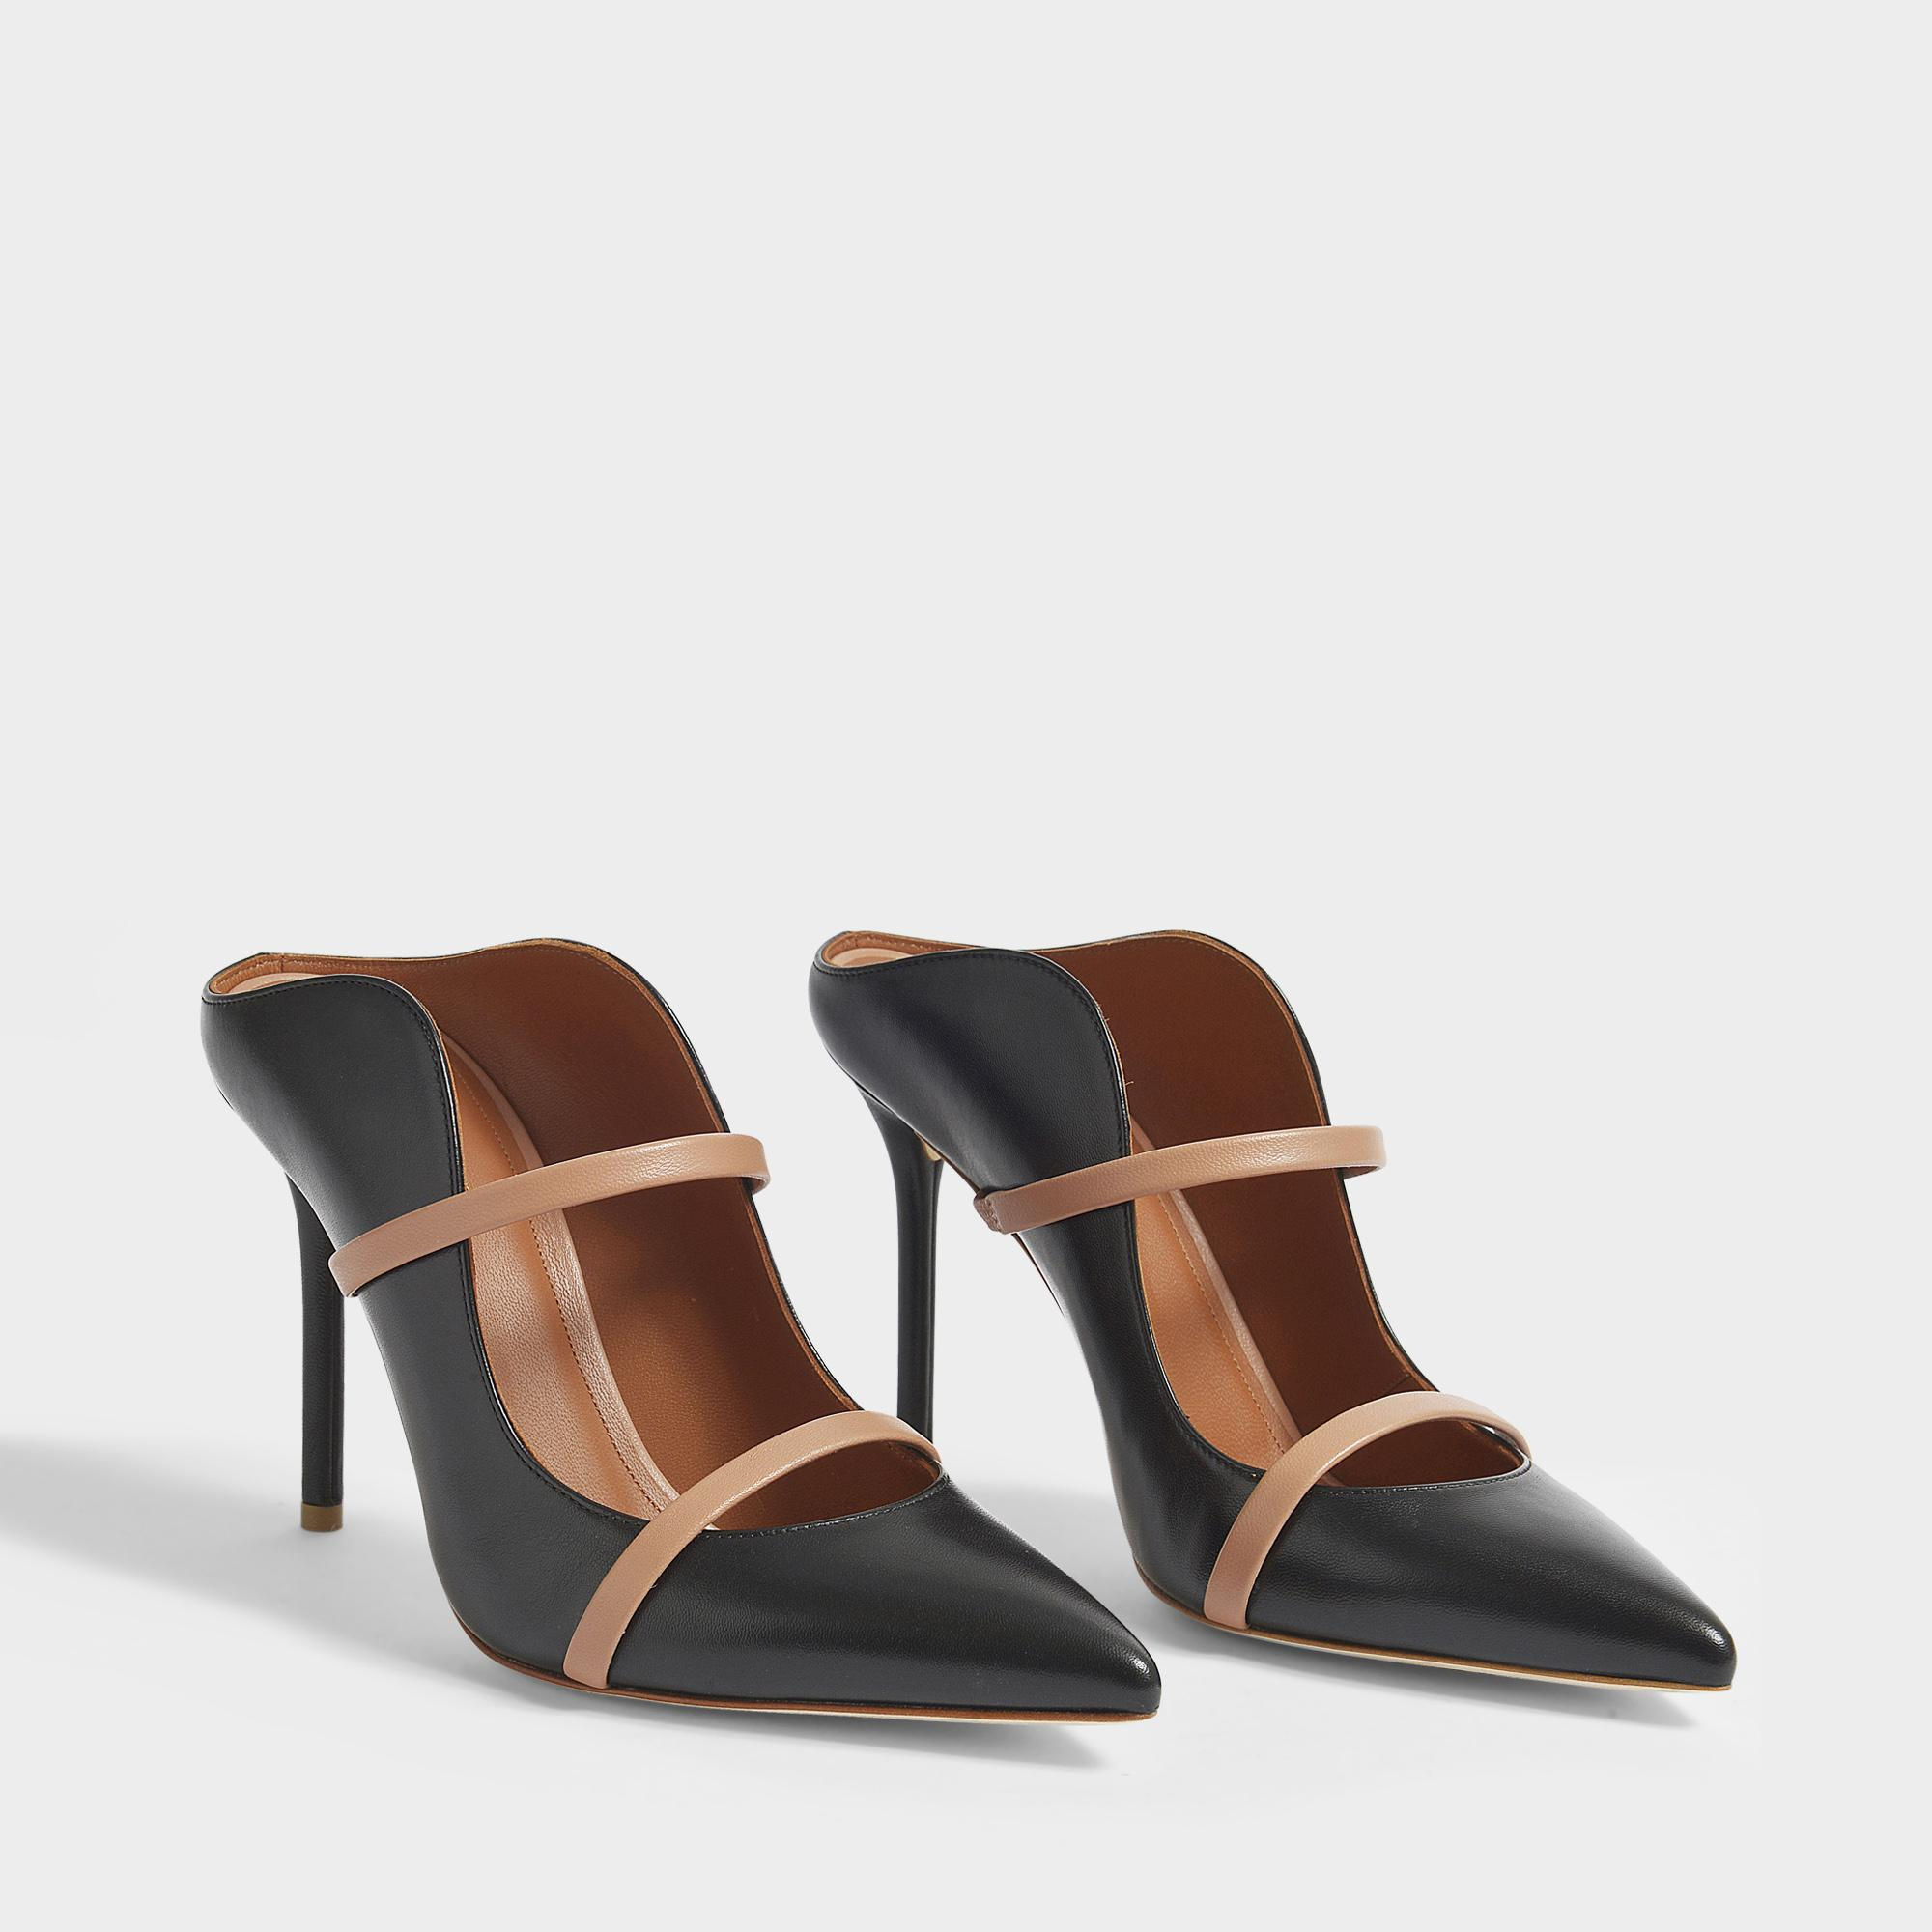 78f7a72ba12ff malone-souliers--Maureen-100-High-Mule-Shoes -In-Black-And-Nude-Nappa-Leather.jpeg